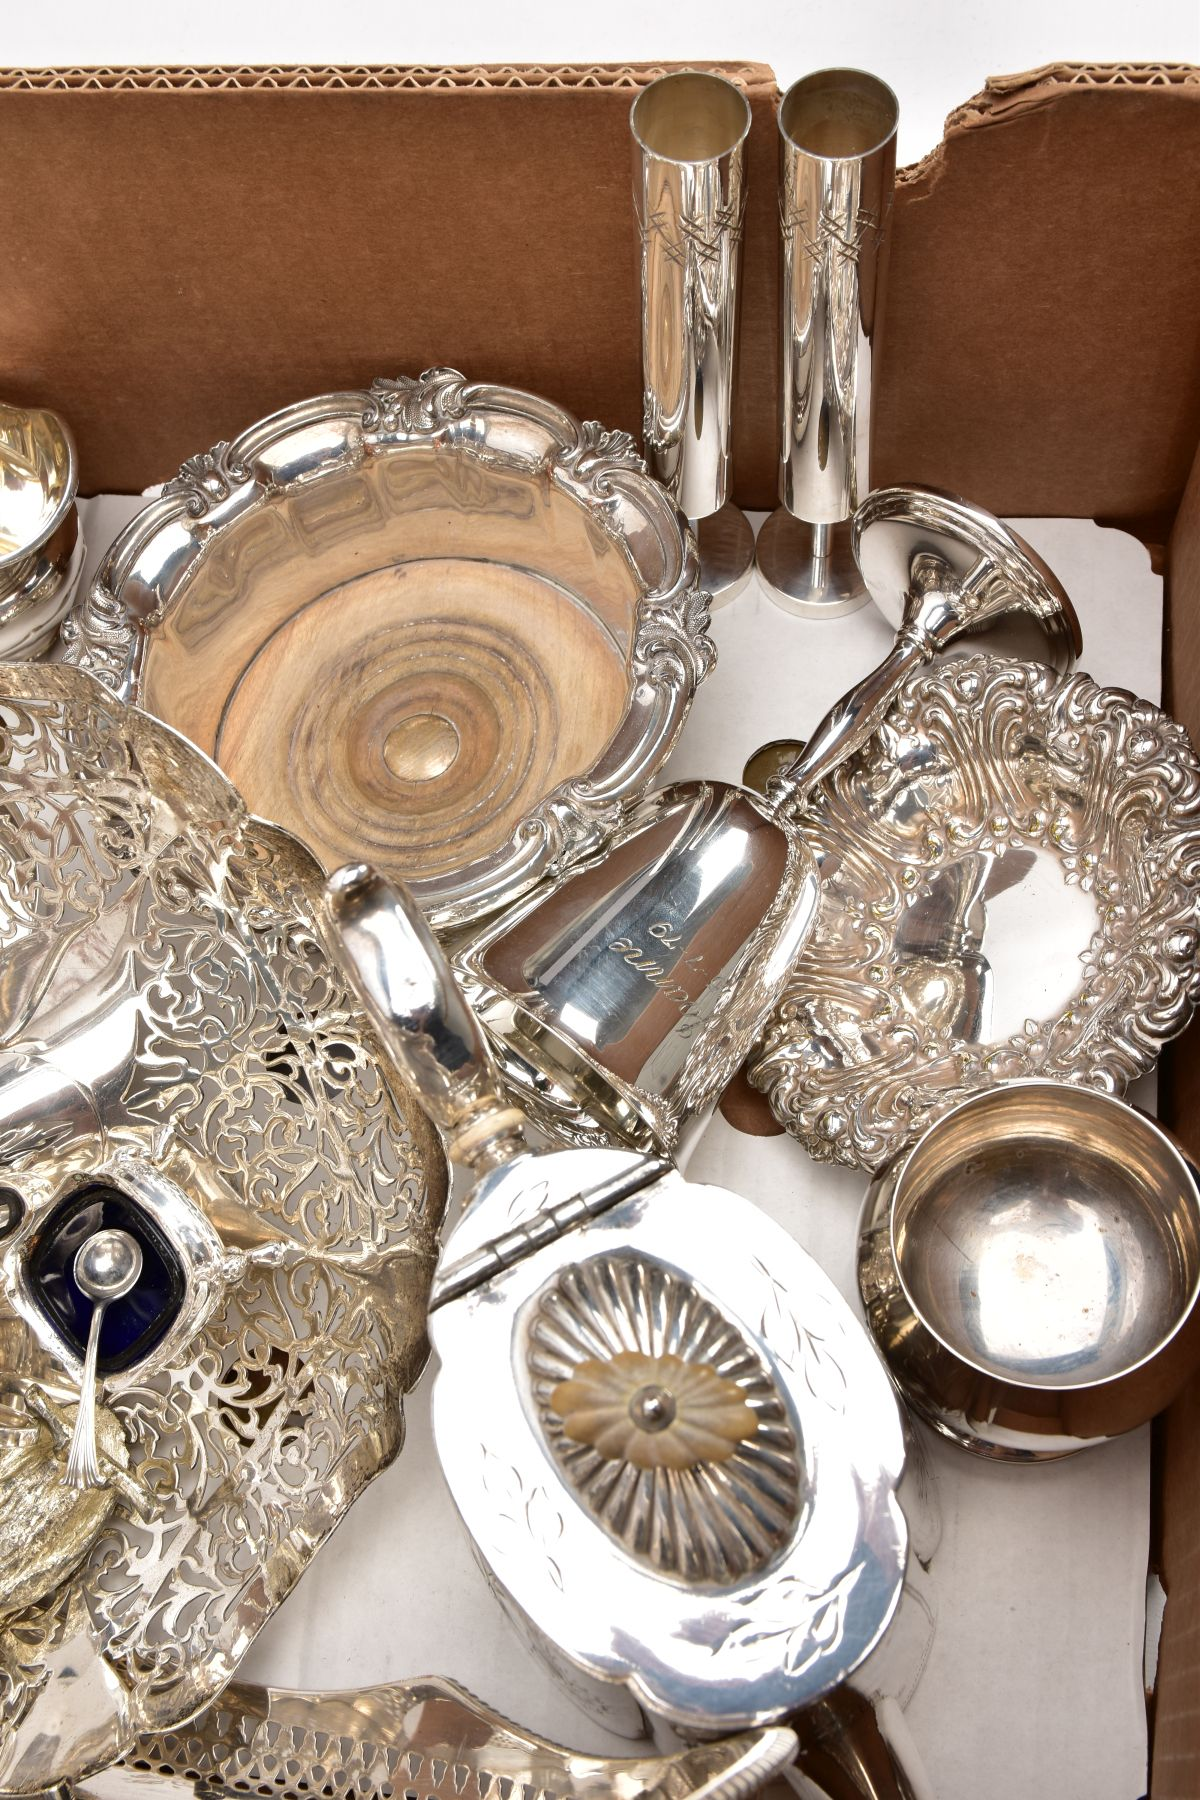 A BOX CONTAINING A QUANTITY OF SILVER PLATED ITEMS, to include a teapot and coffeepot with stand, - Image 6 of 7